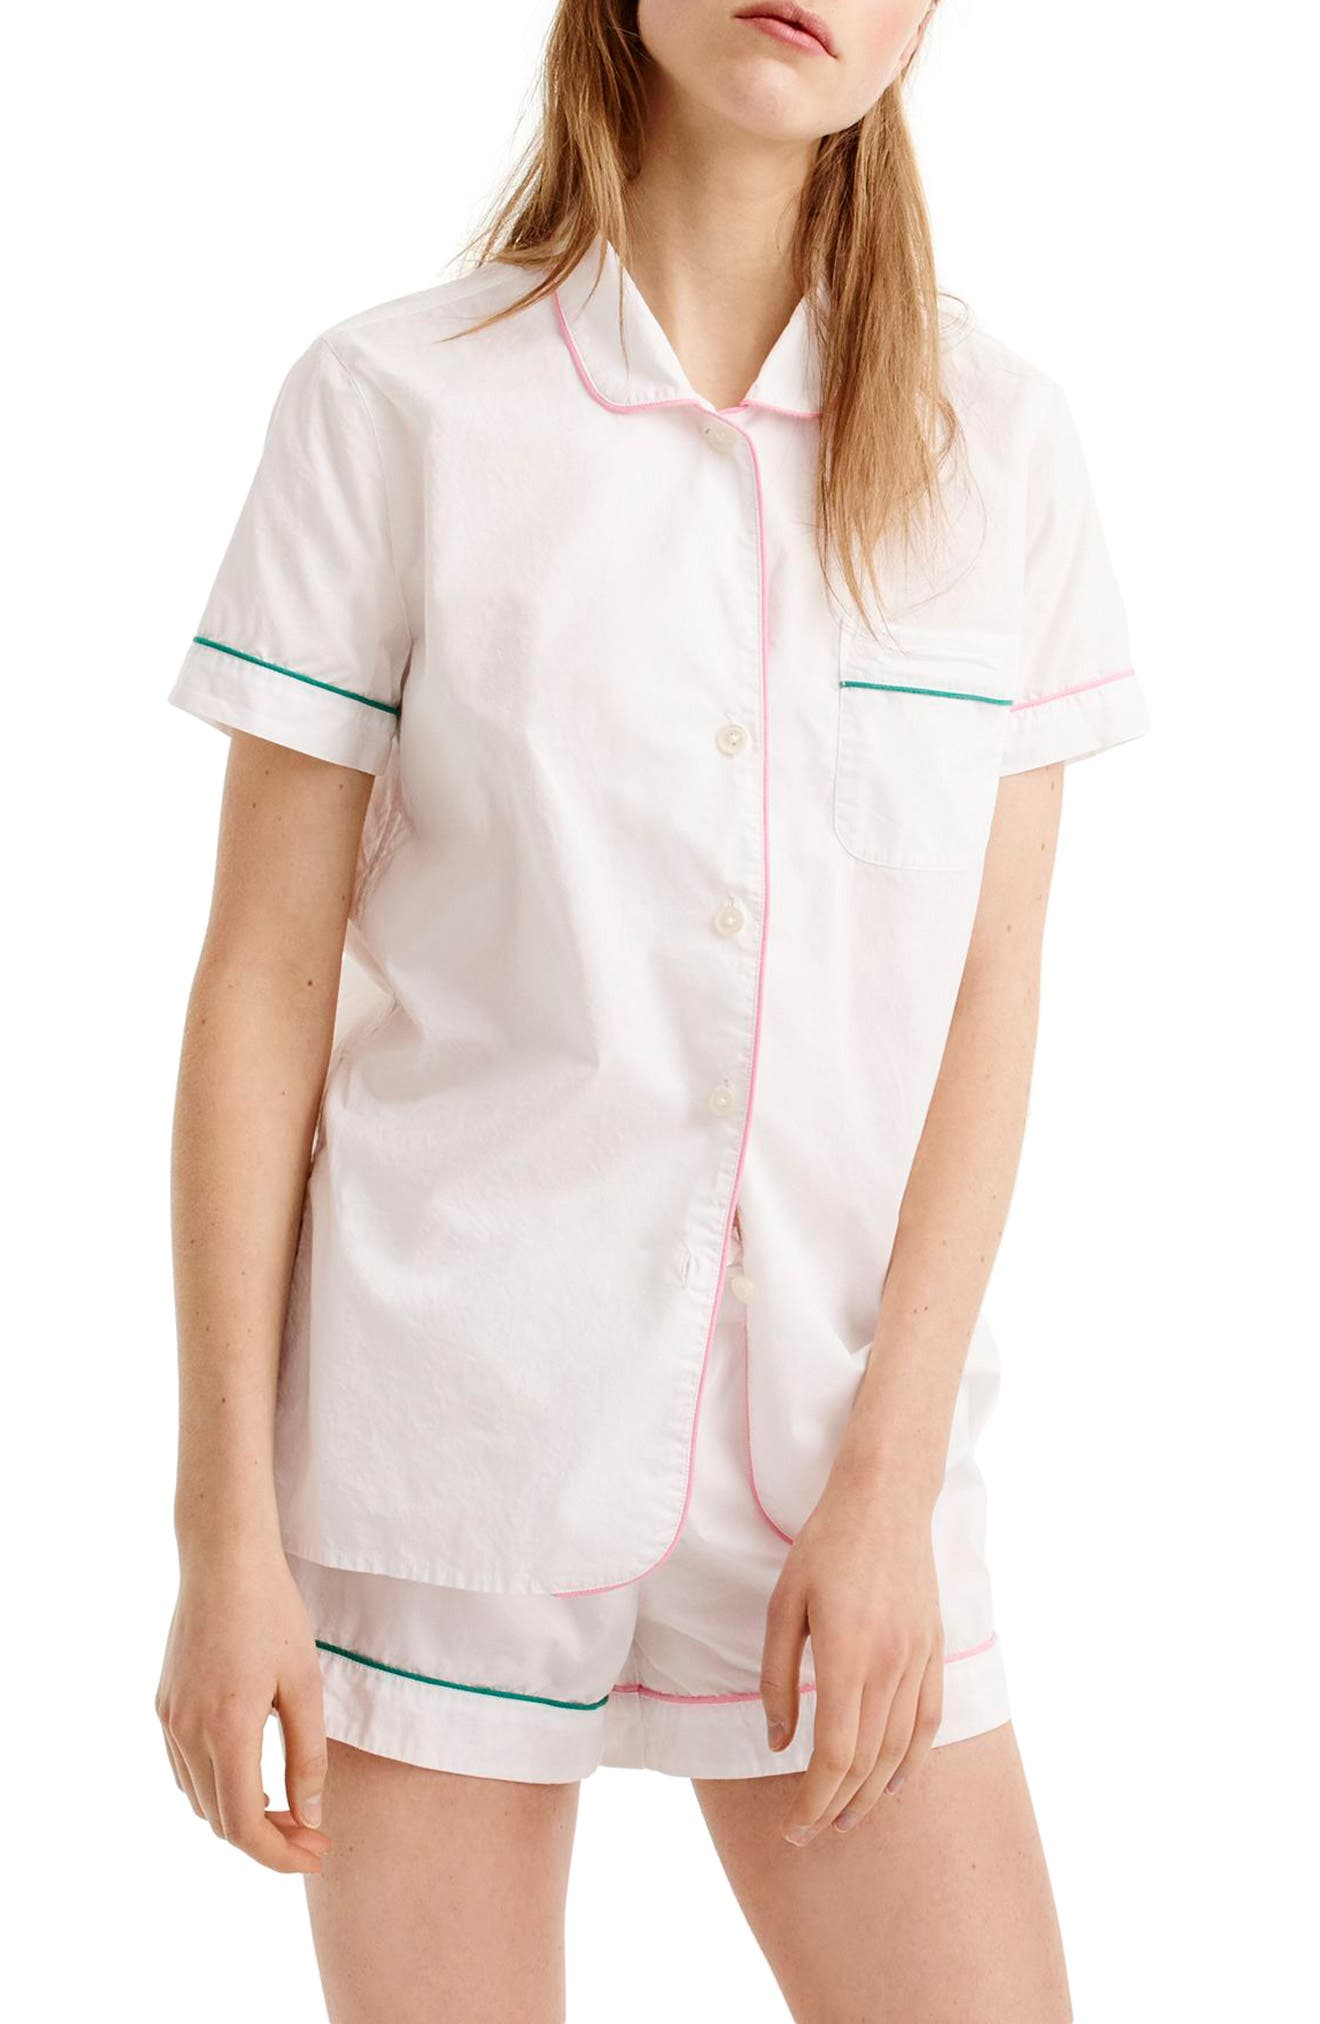 J.Crew Tipped Short Cotton Pajamas